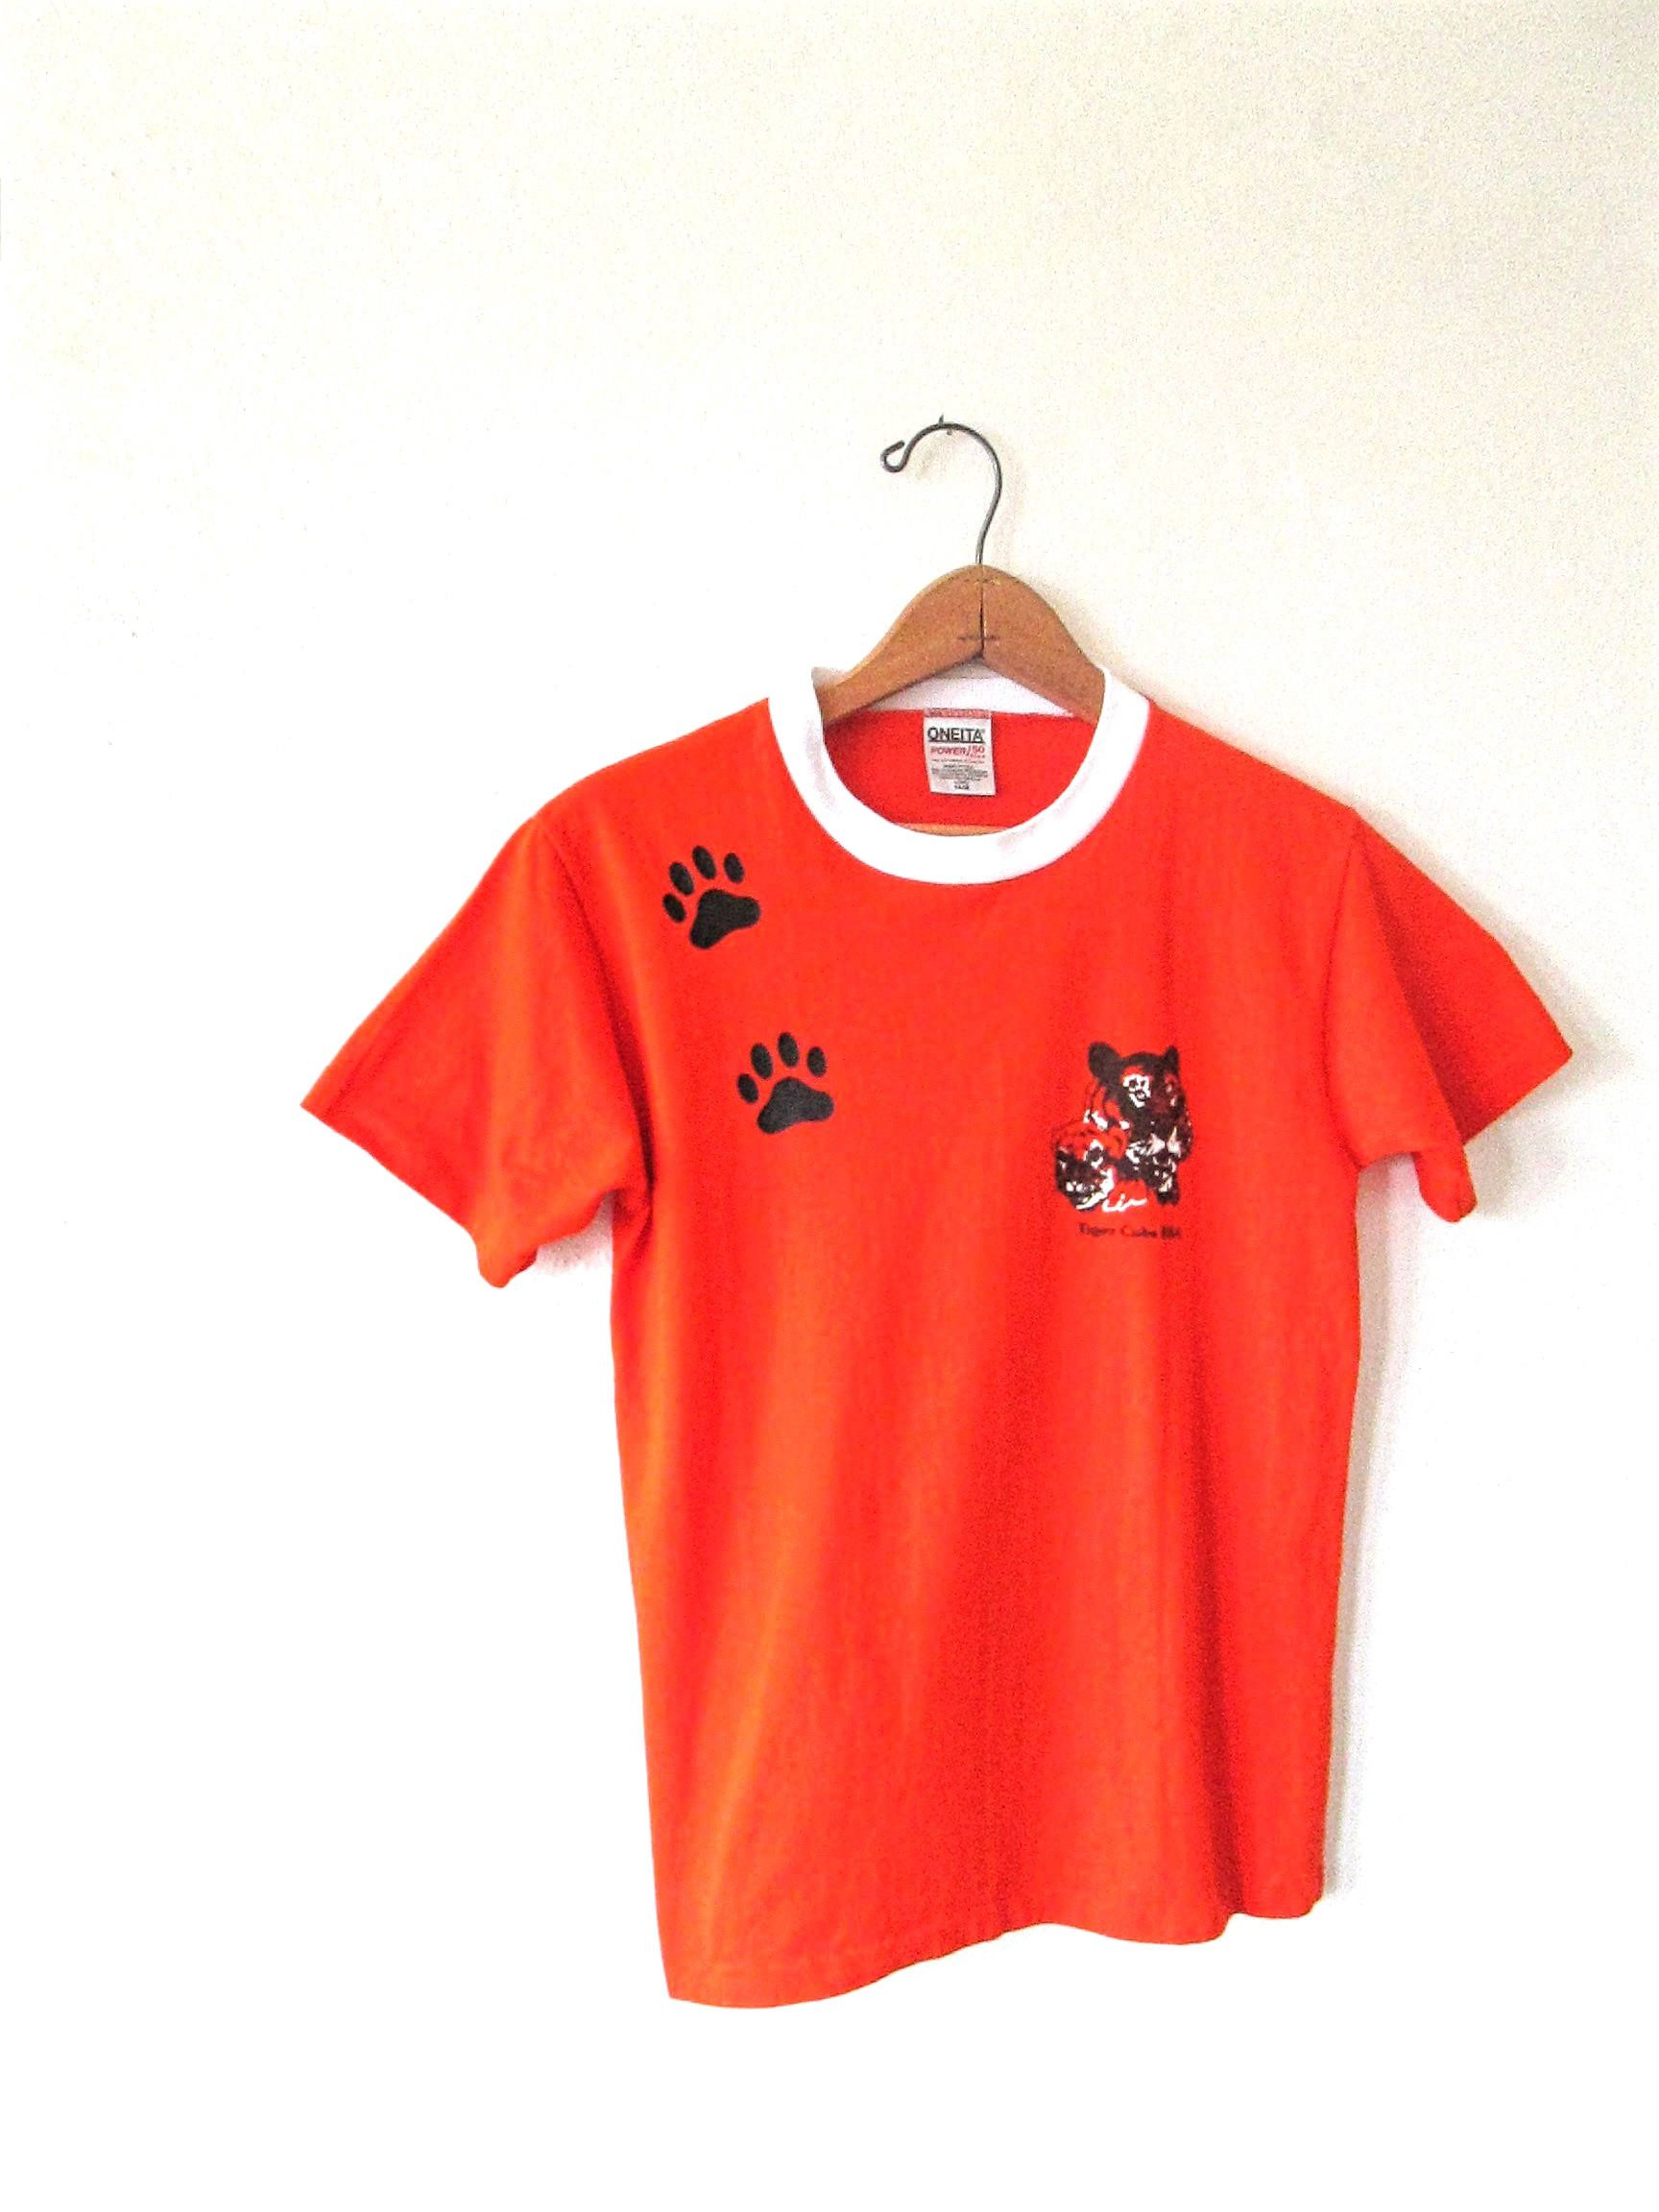 980688916cde1 Vintage 1990s TIGER CUBS Boy SCOUTS of America Ringer Tshirt Kids Sz ...